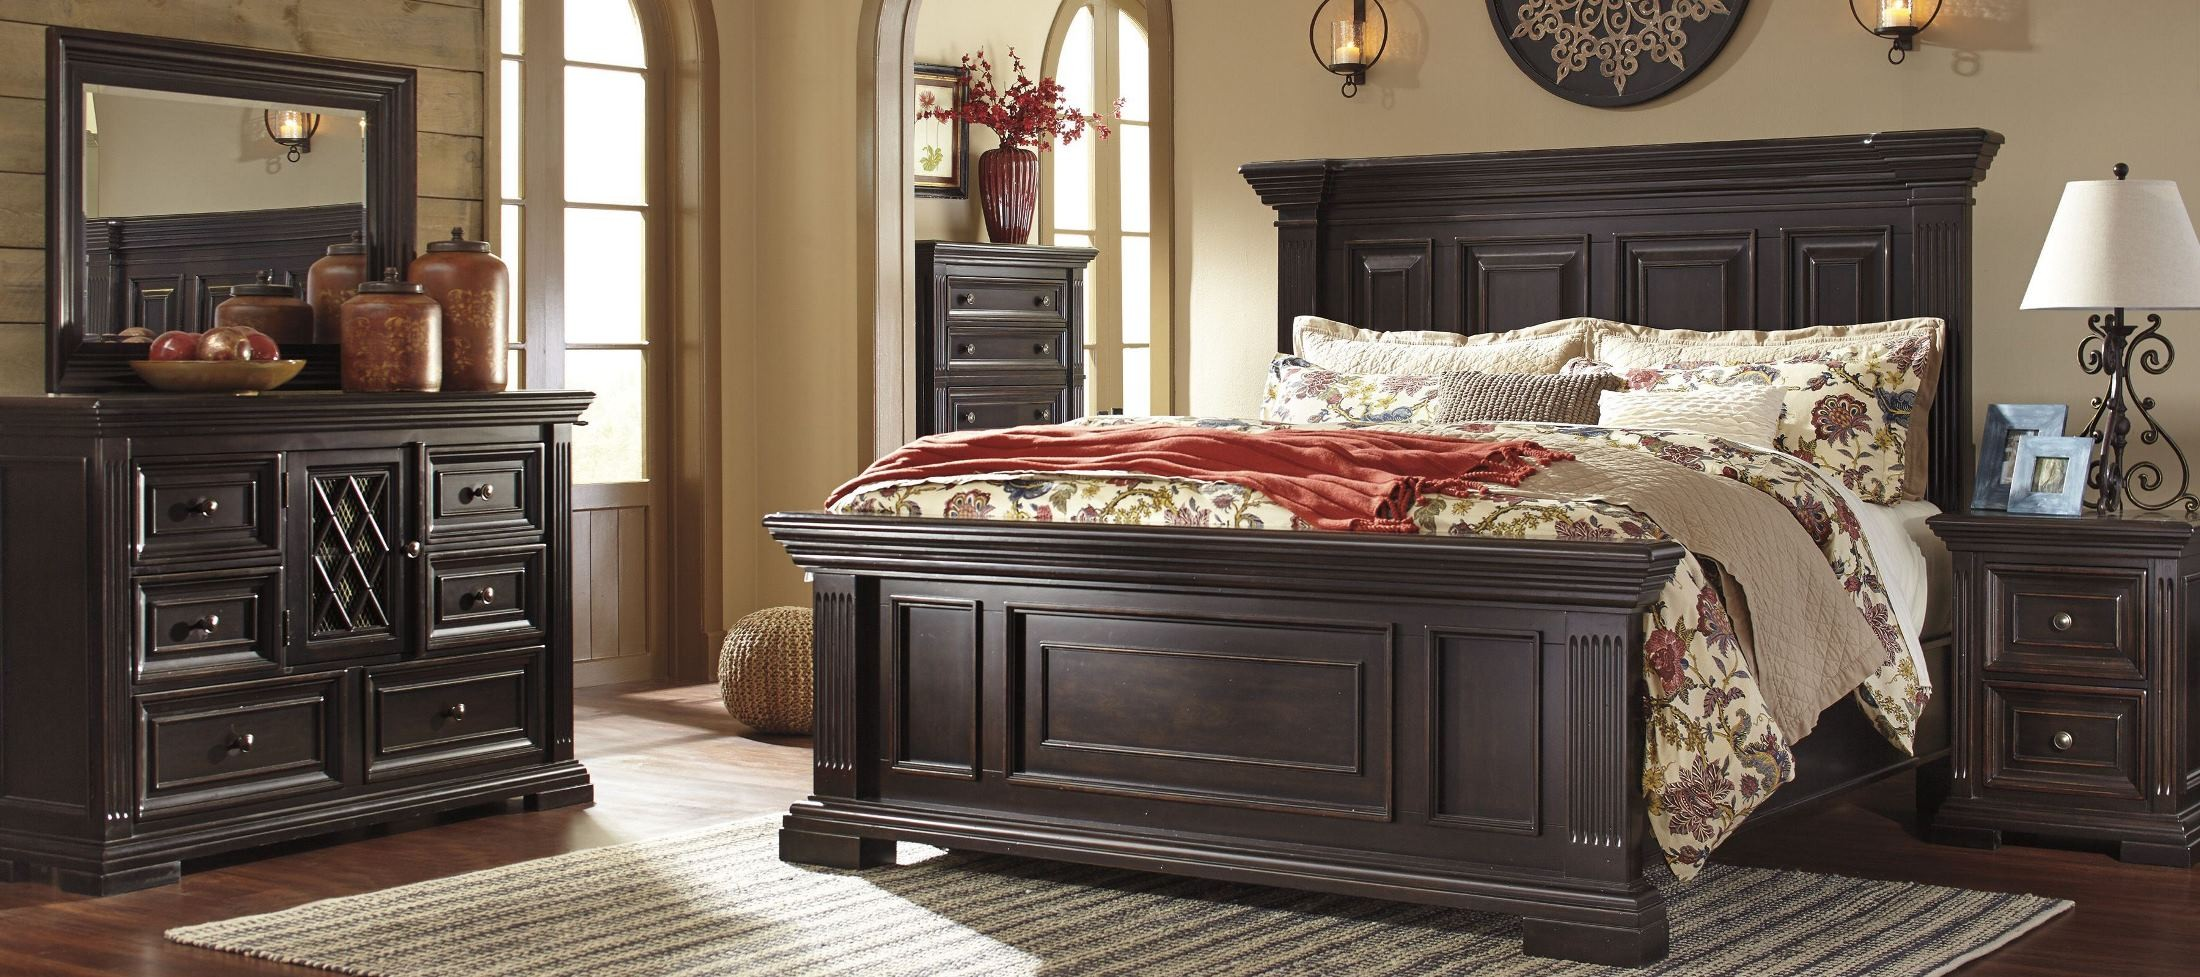 willenburg dark brown panel bedroom set b643 57 54 96 ashley